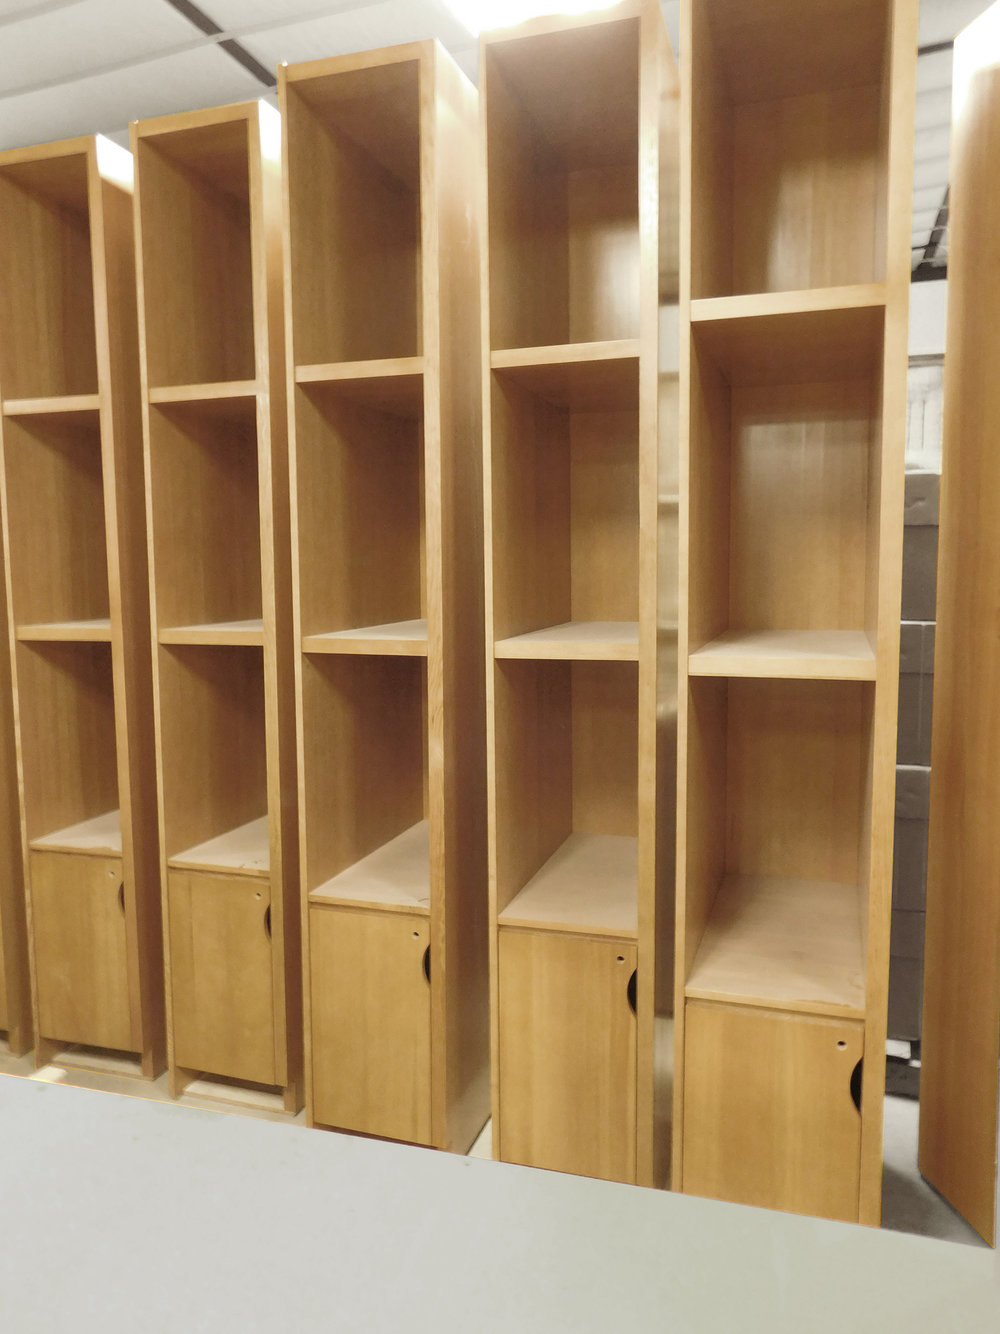 Fabricated Locker Cabinet Architectural Millwork